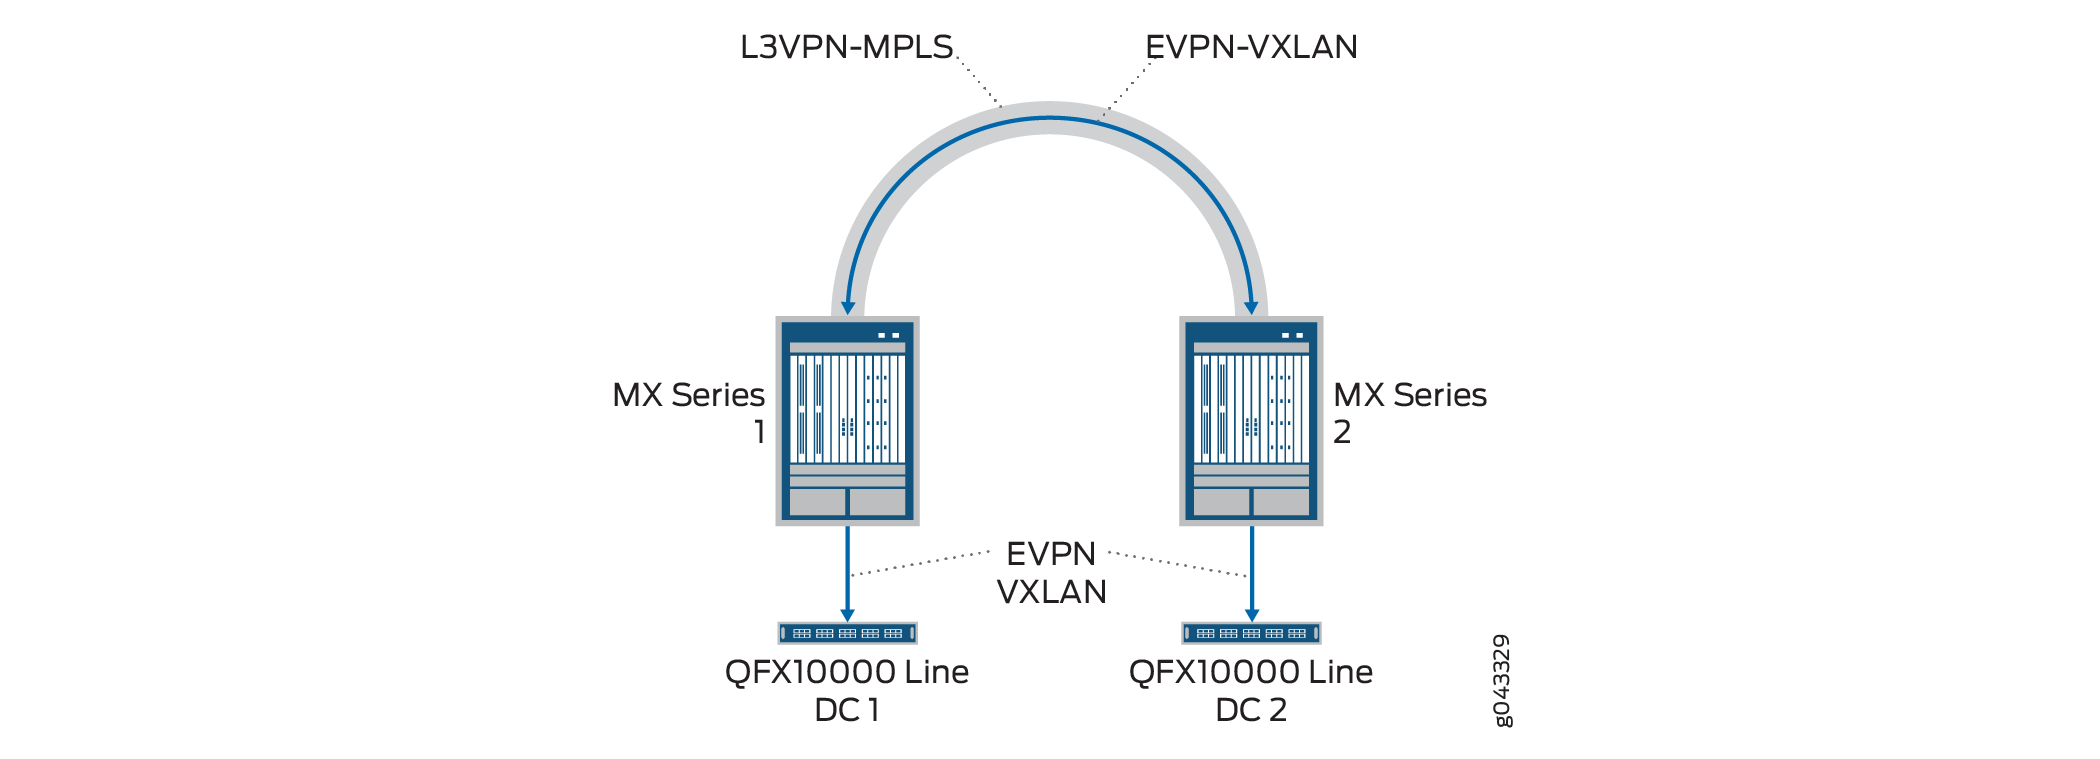 Implementing EVPN-VXLAN for Data Centers - TechLibrary